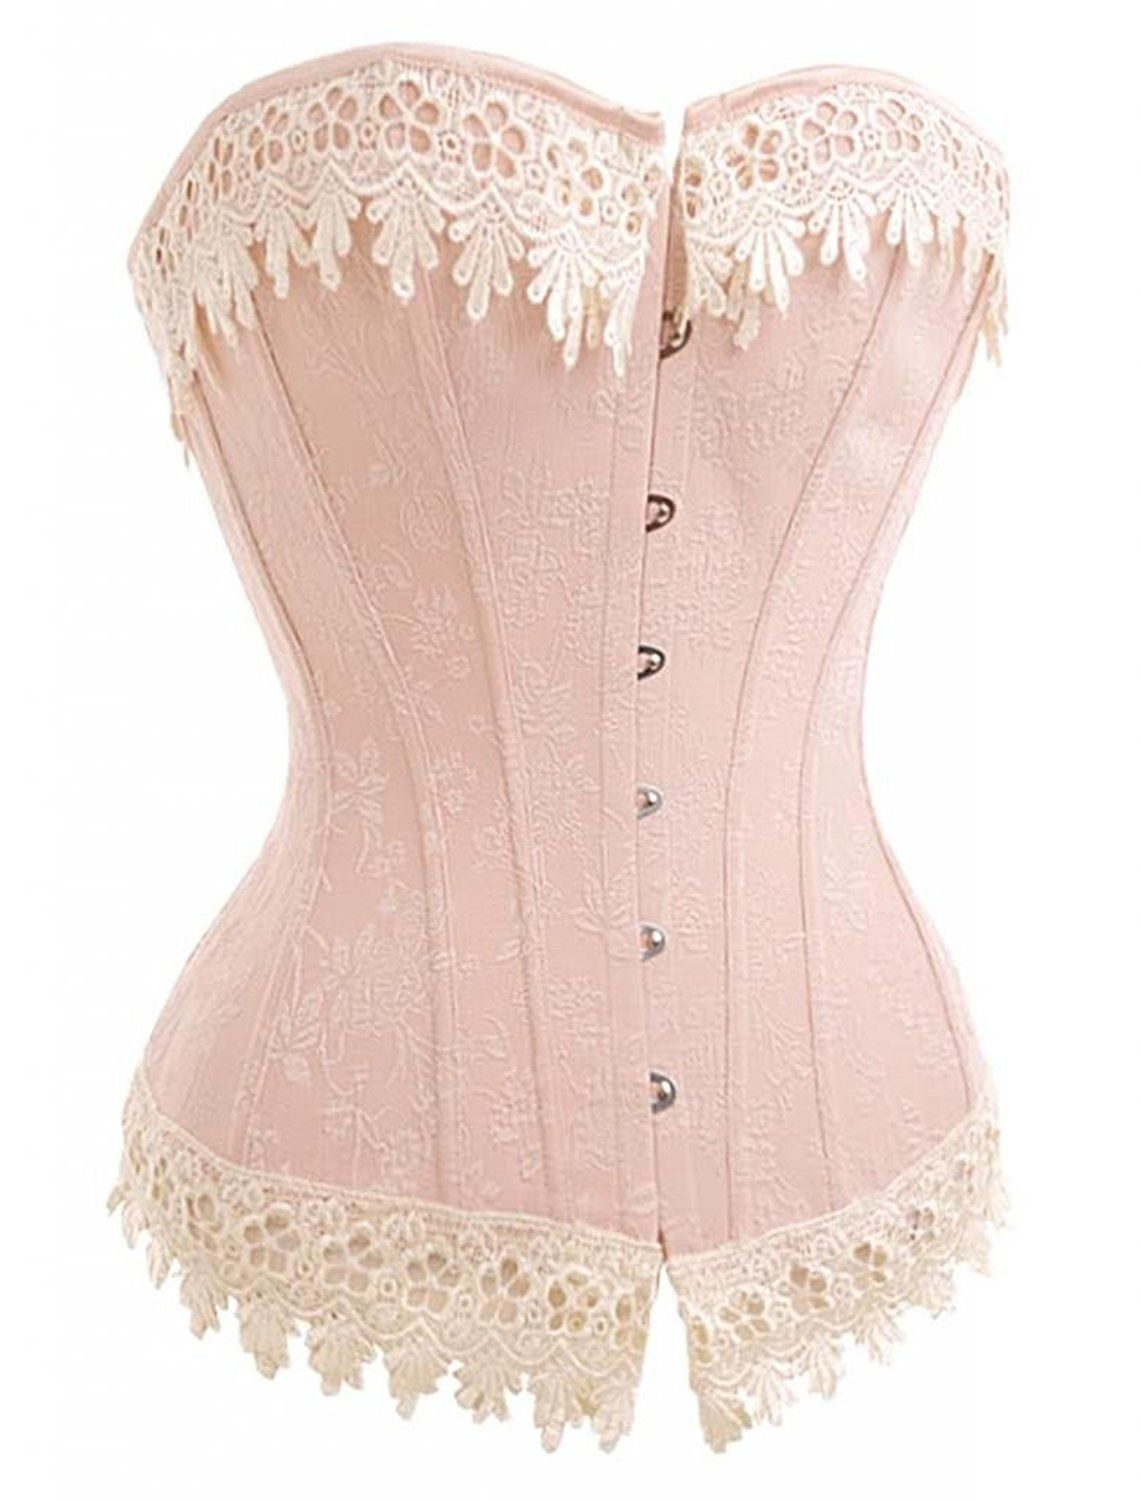 Alivila.Y Fashion Sexy Floral Lace Trim Corset 2606 With G-String ...